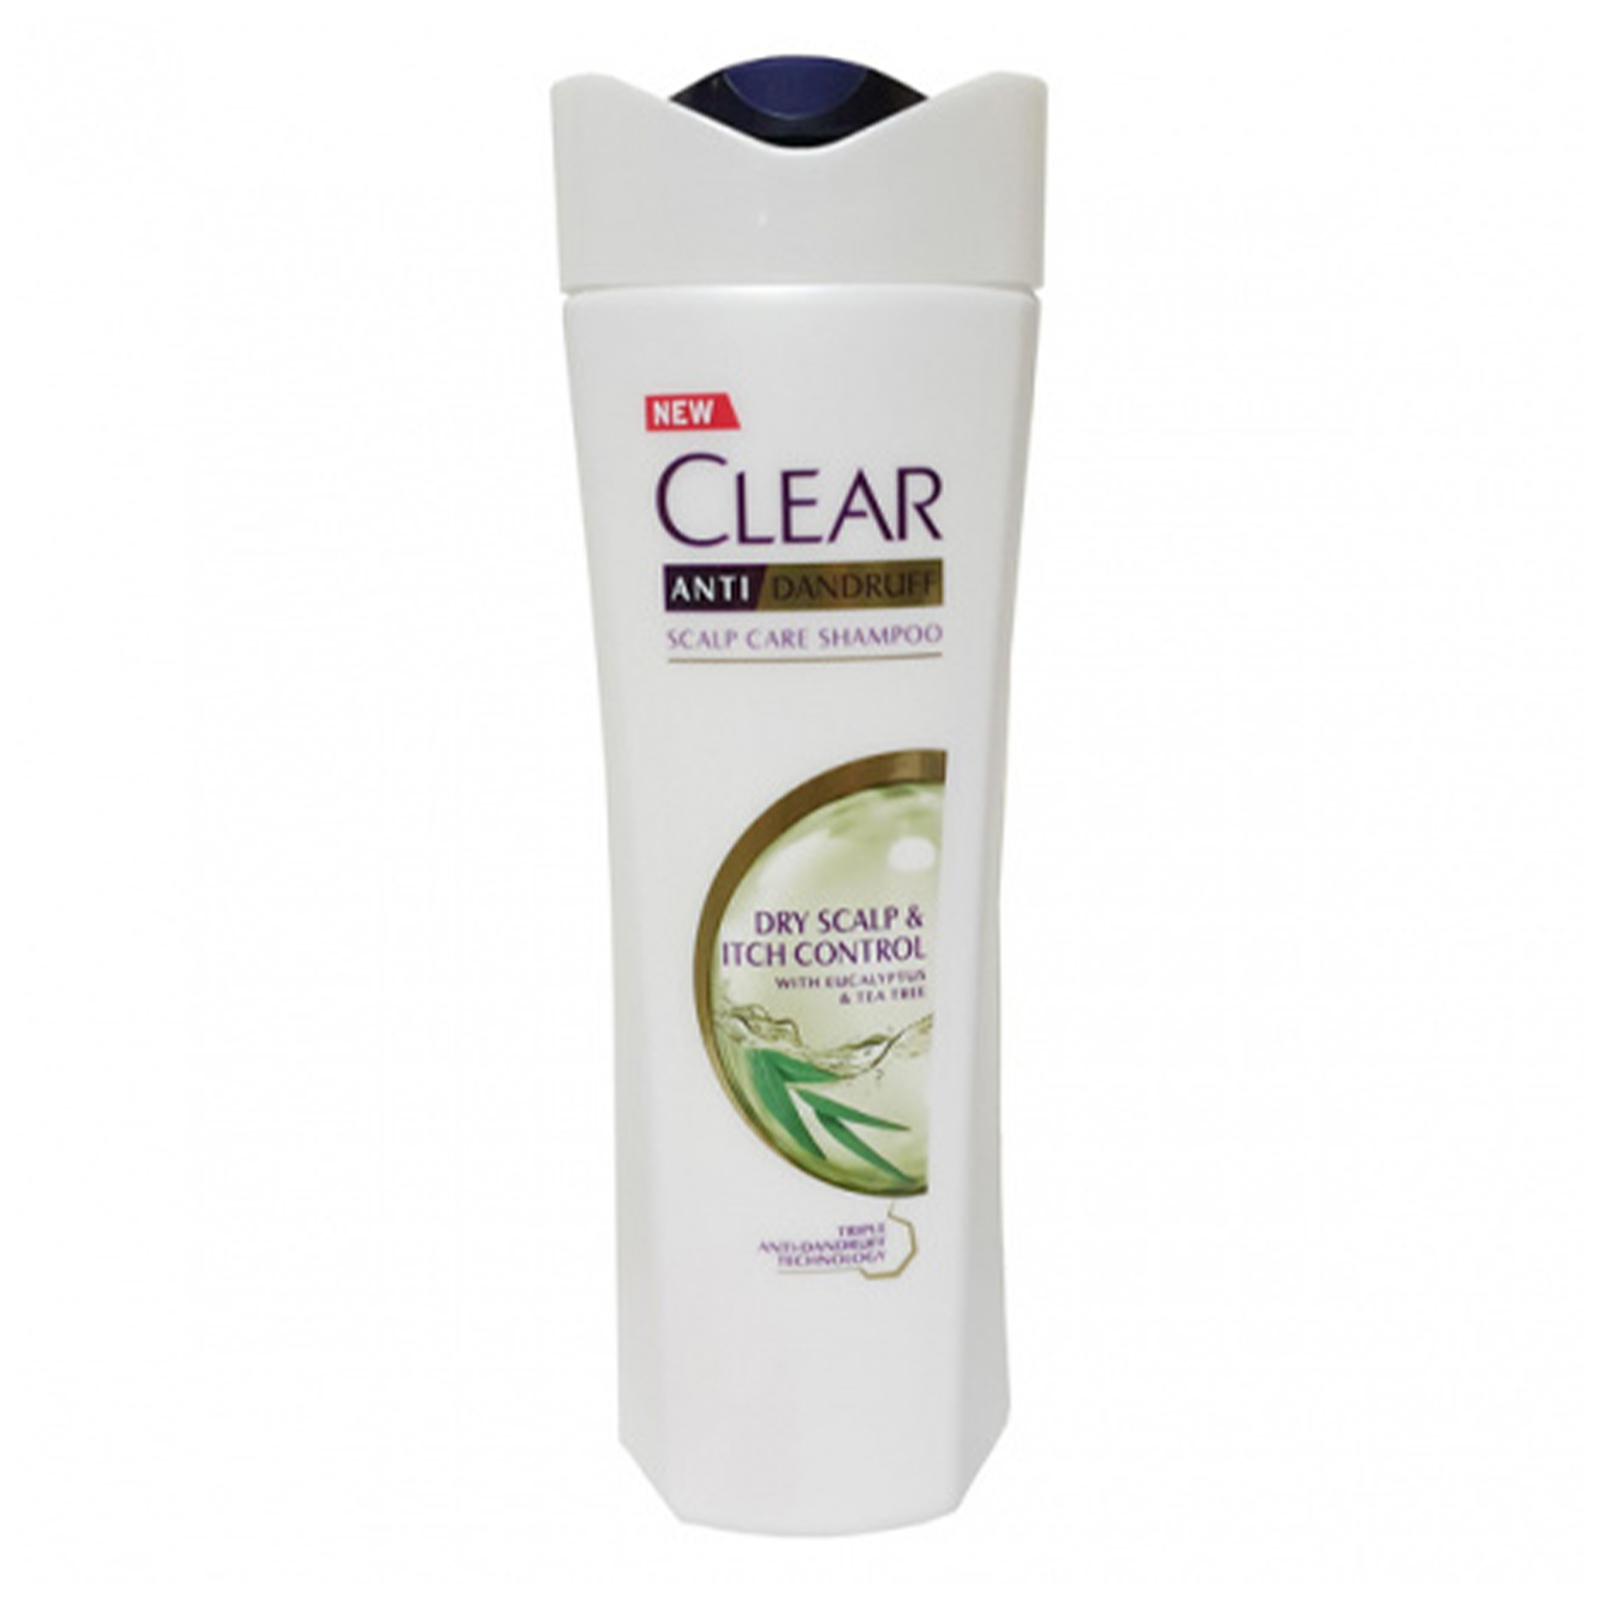 Clear Dry Scalp and Itch Control Shampoo - 330ml